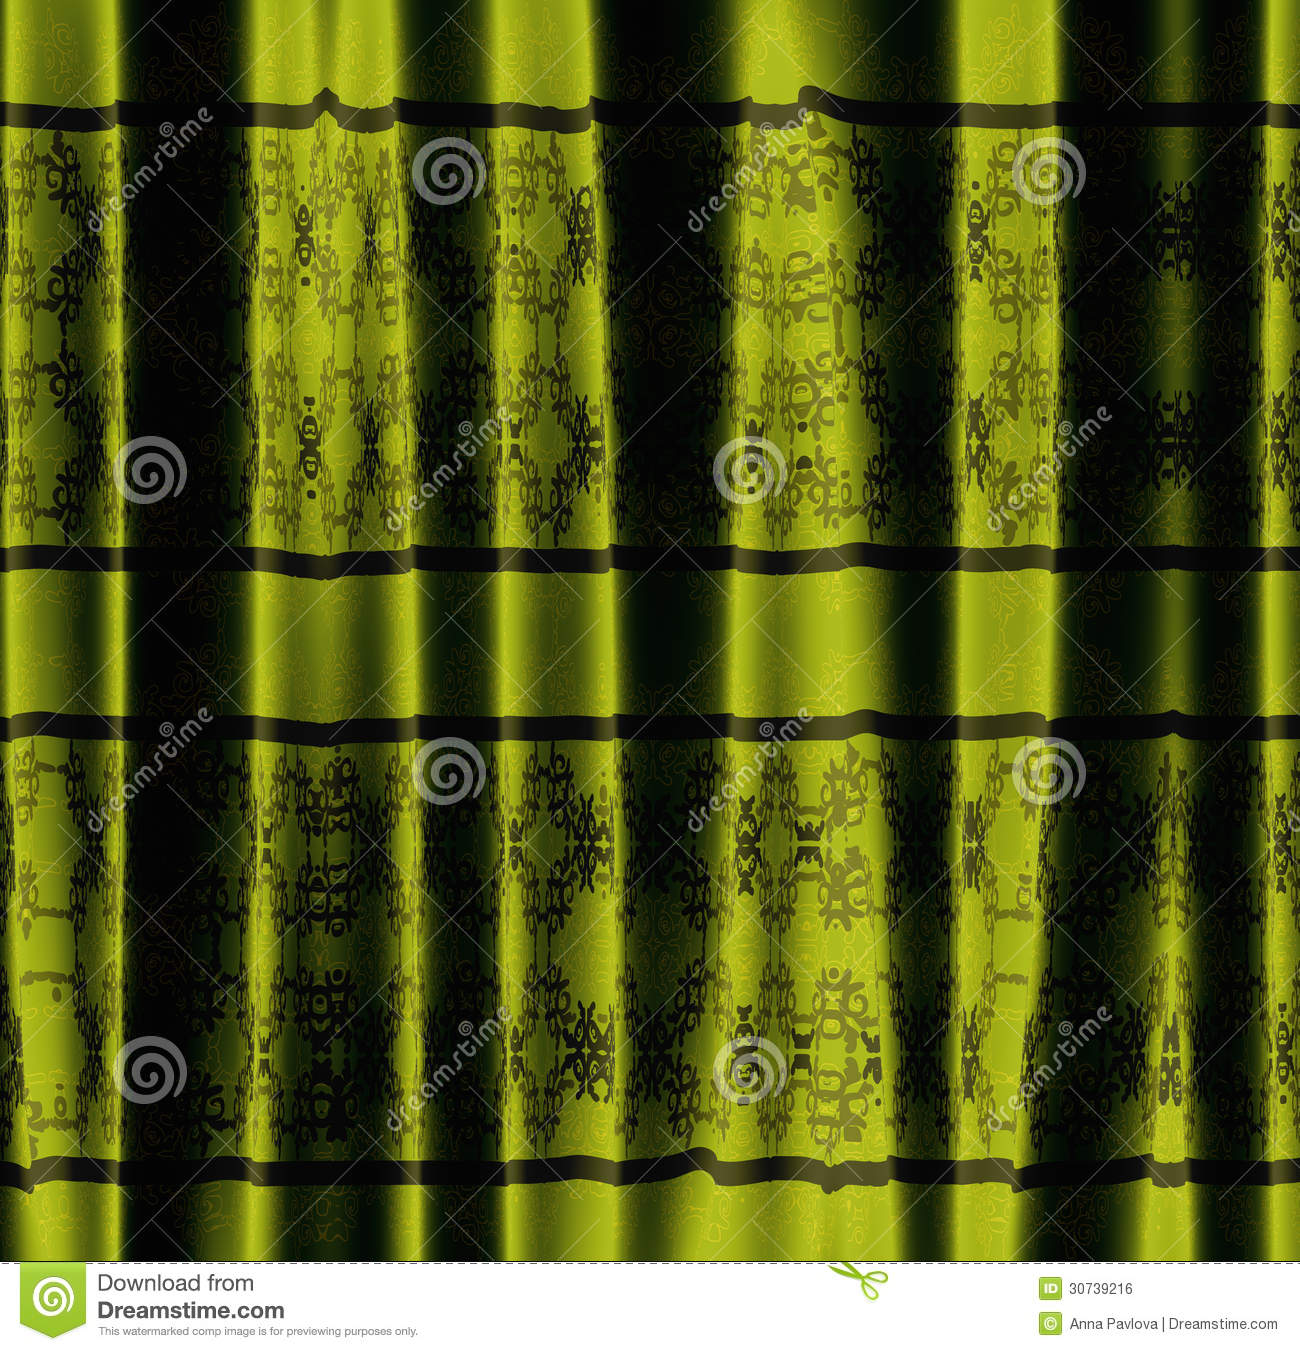 Green curtain with pattern royalty free stock image image 30739216 - Green curtain patterns ...